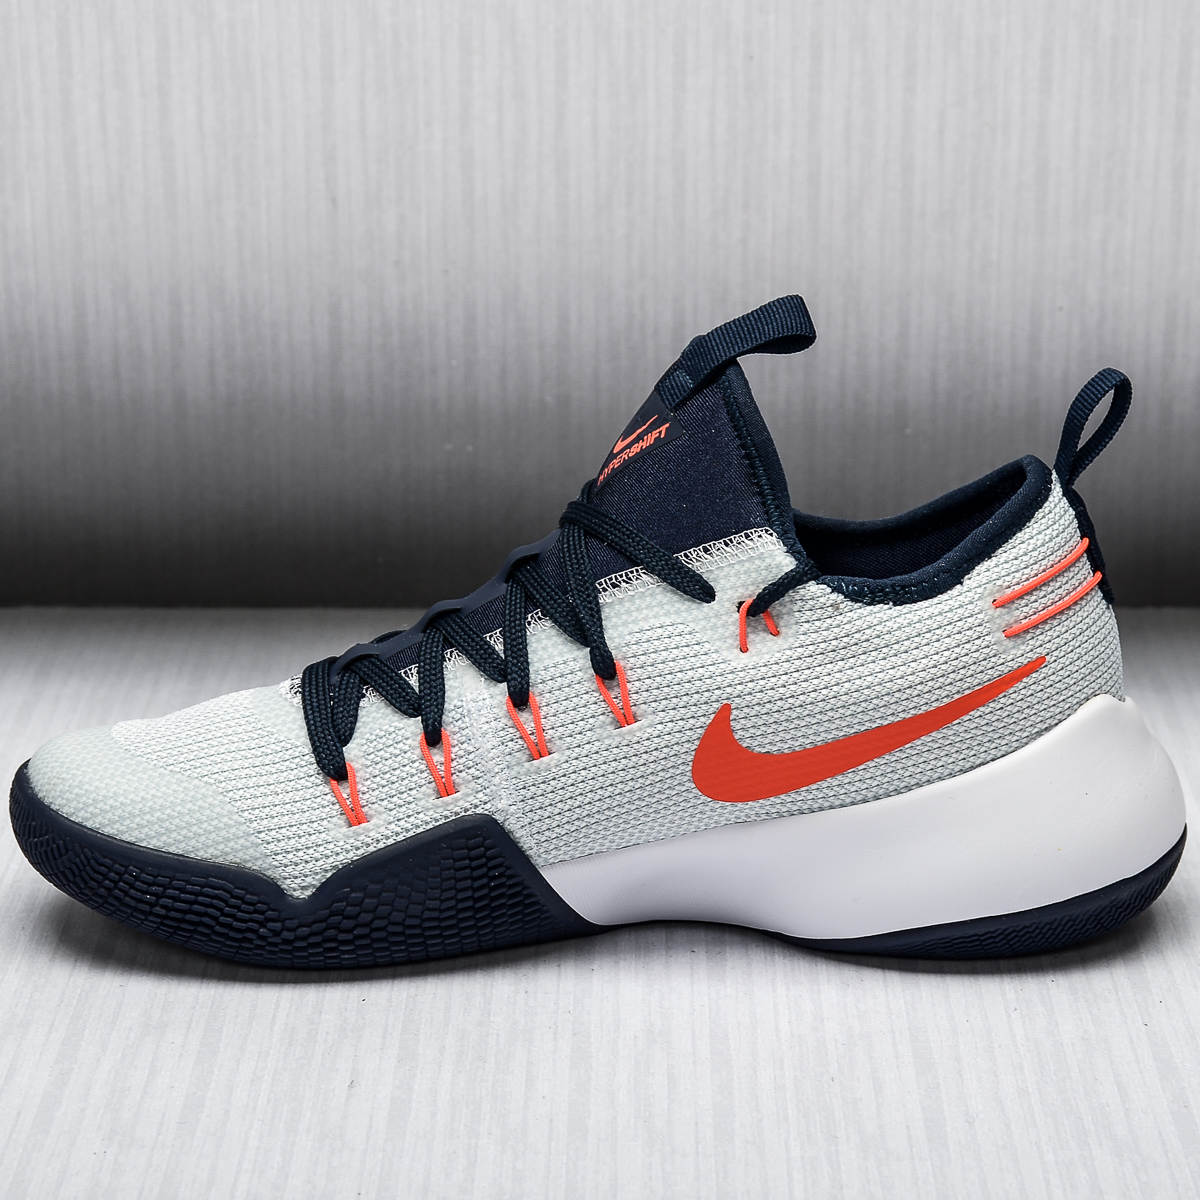 Usa Basketball Shoes